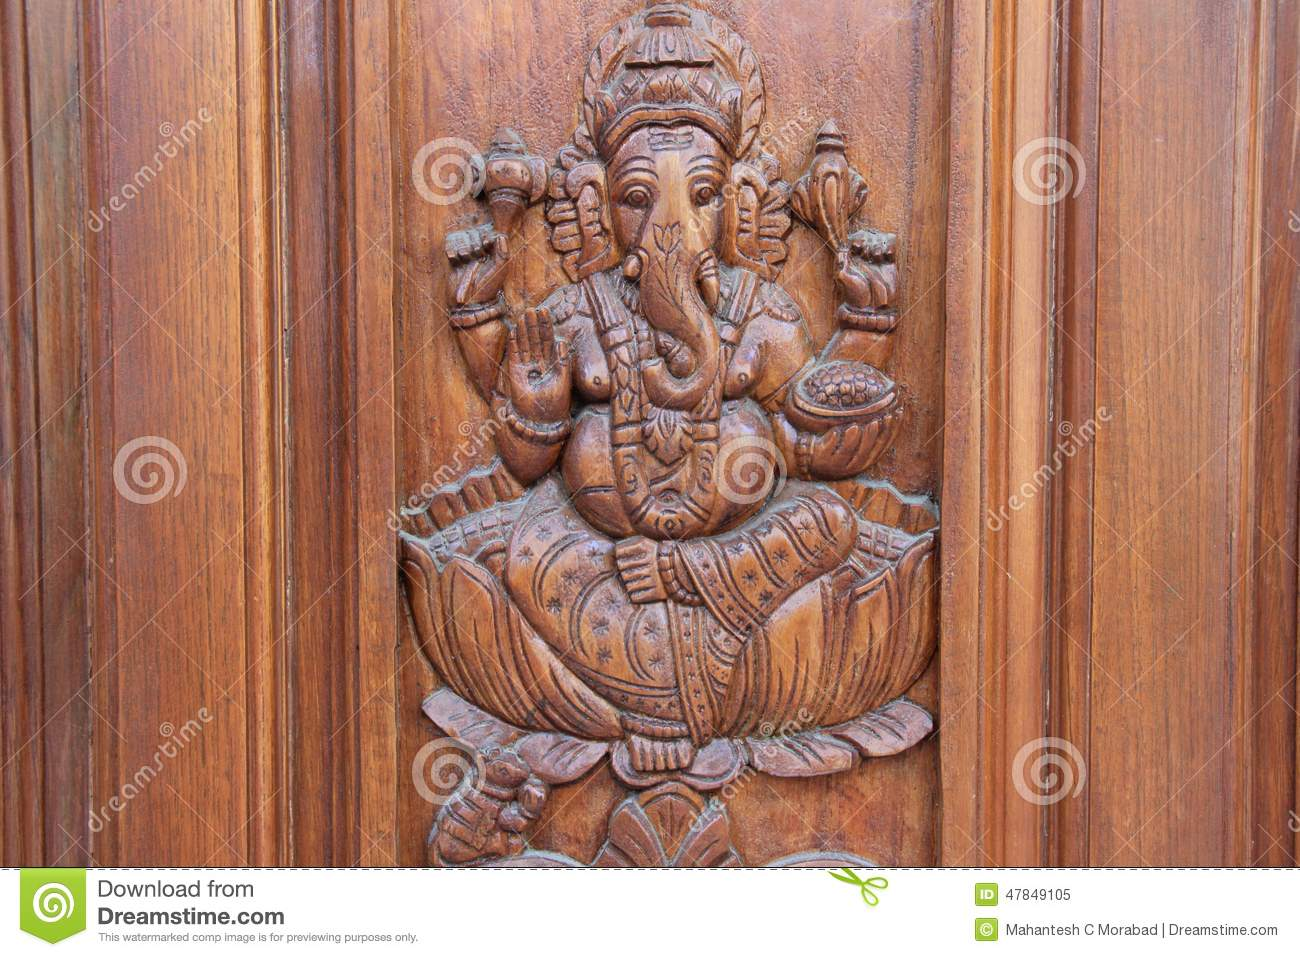 ganesha on teakwood door stock image image of engraving